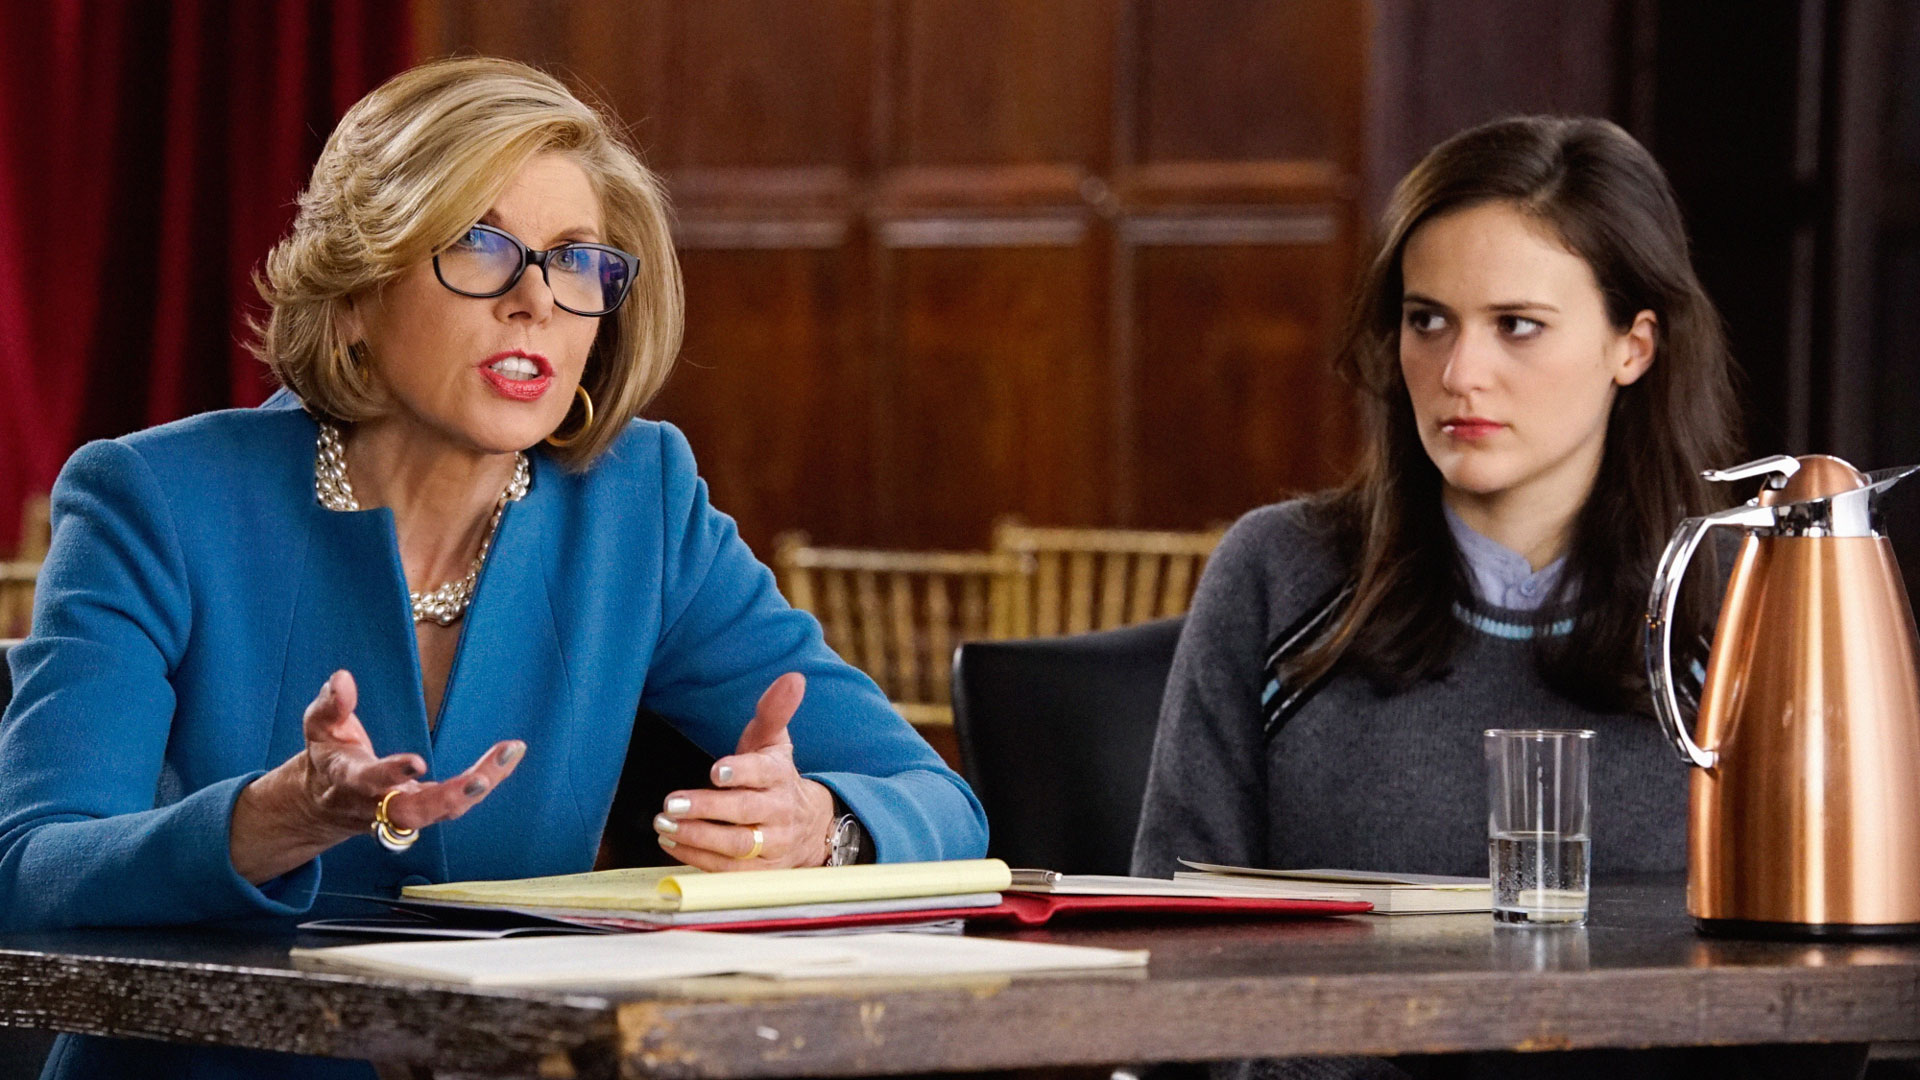 Christine Baranski as Diane Lockhart and Francesca Carpanini as Imogen Stowe